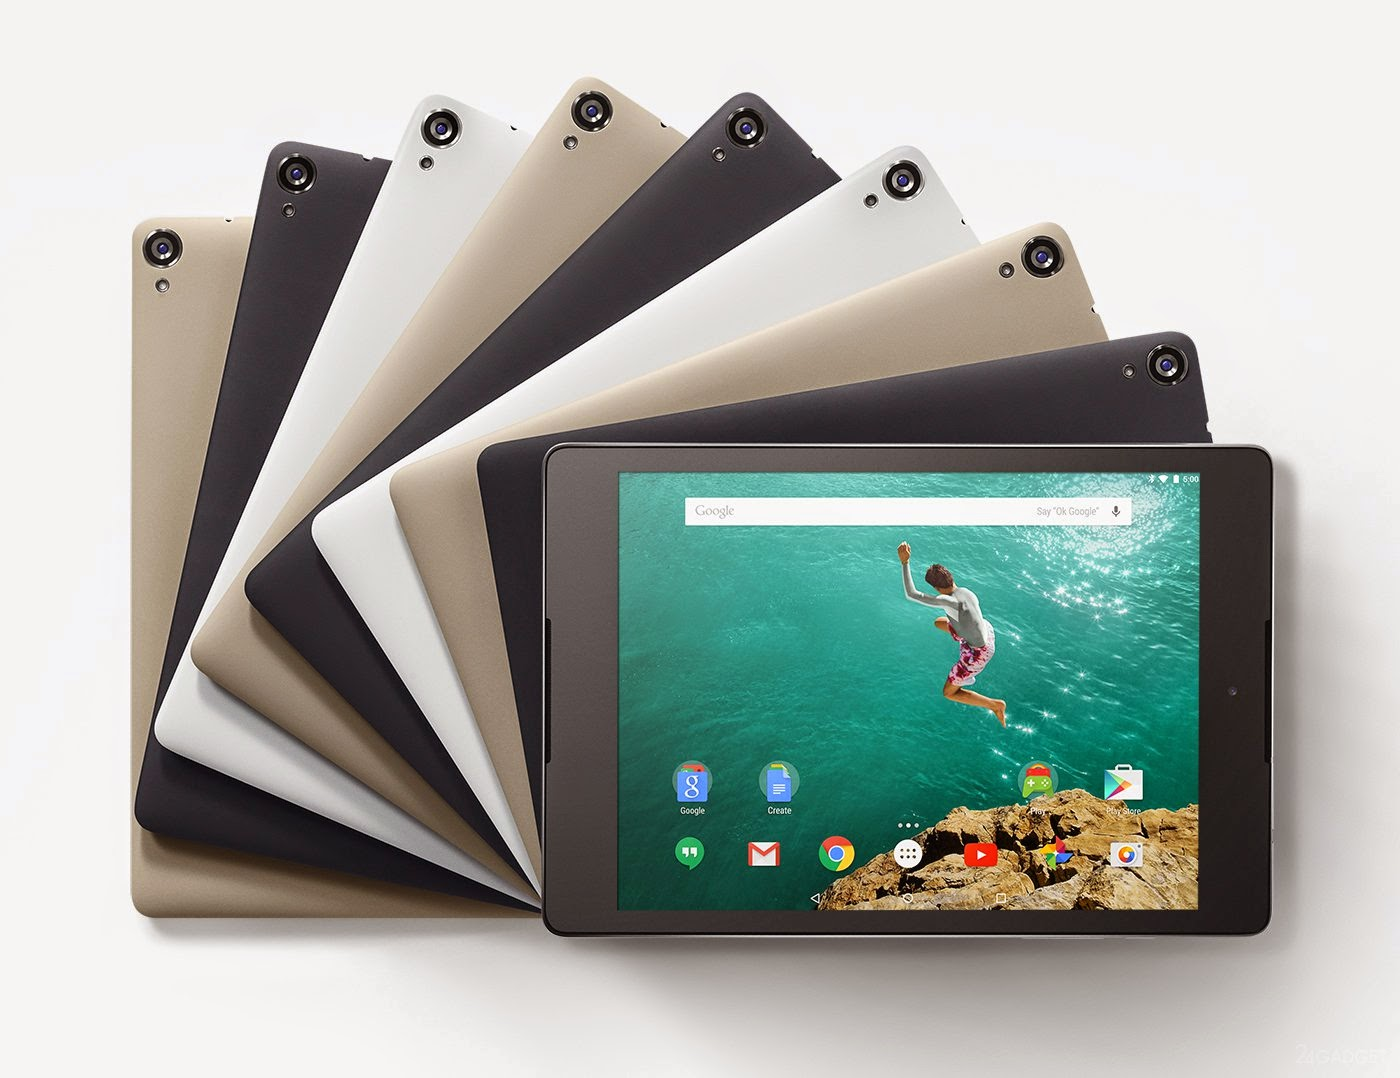 http://funkidos.com/latest-technology/nexus-9-may-be-the-best-tablet-on-the-market